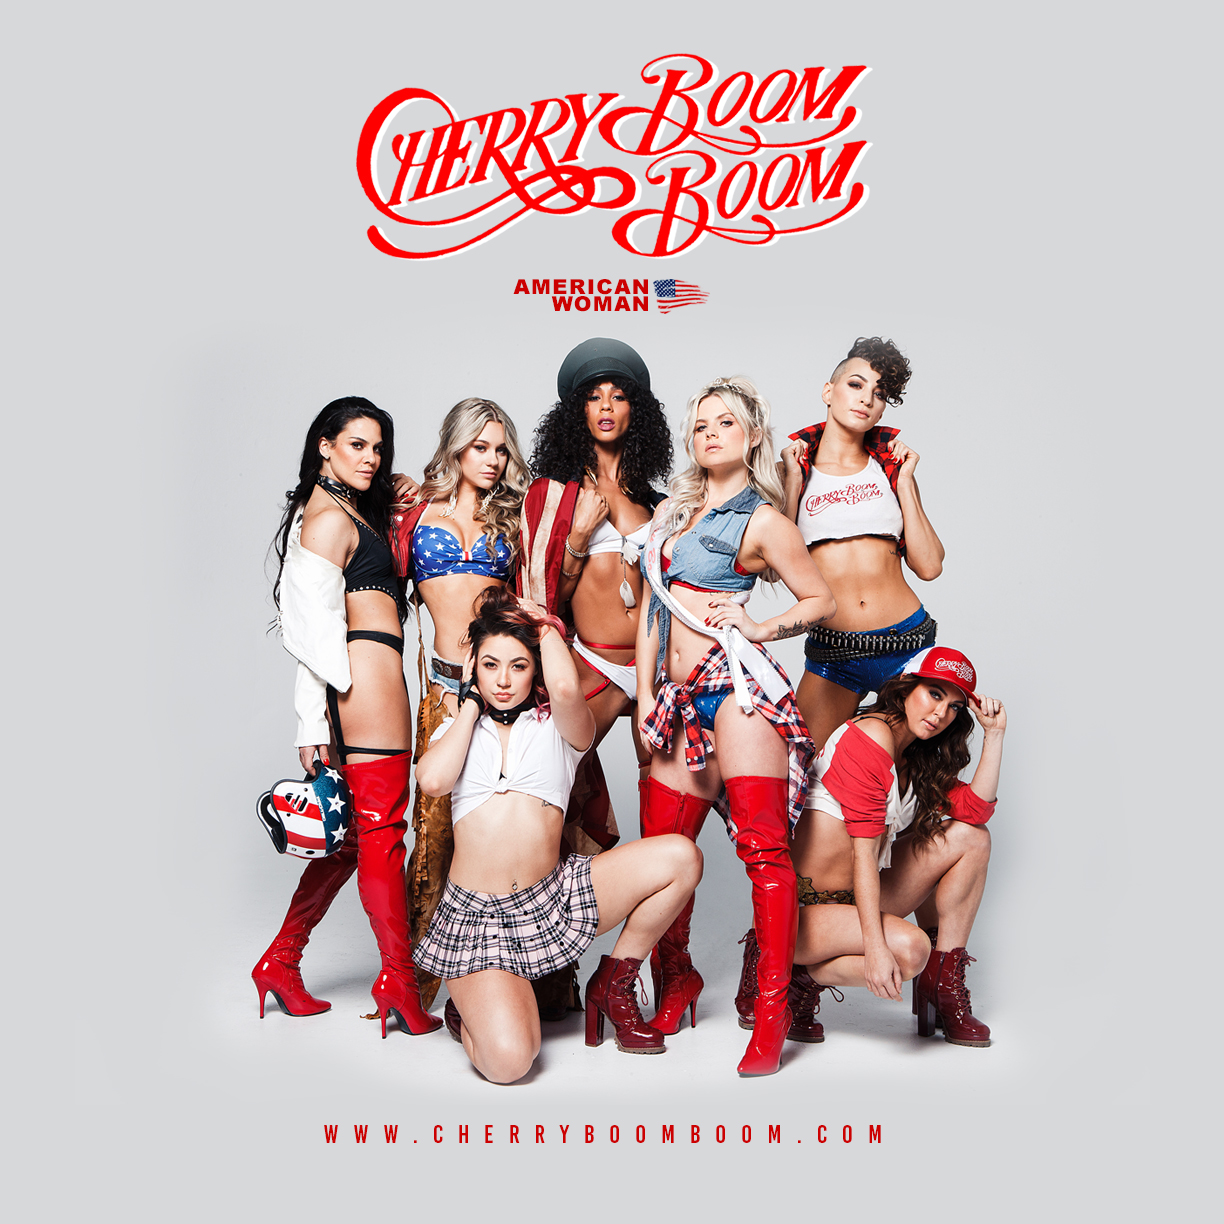 CherryBoomBoom7New.jpg